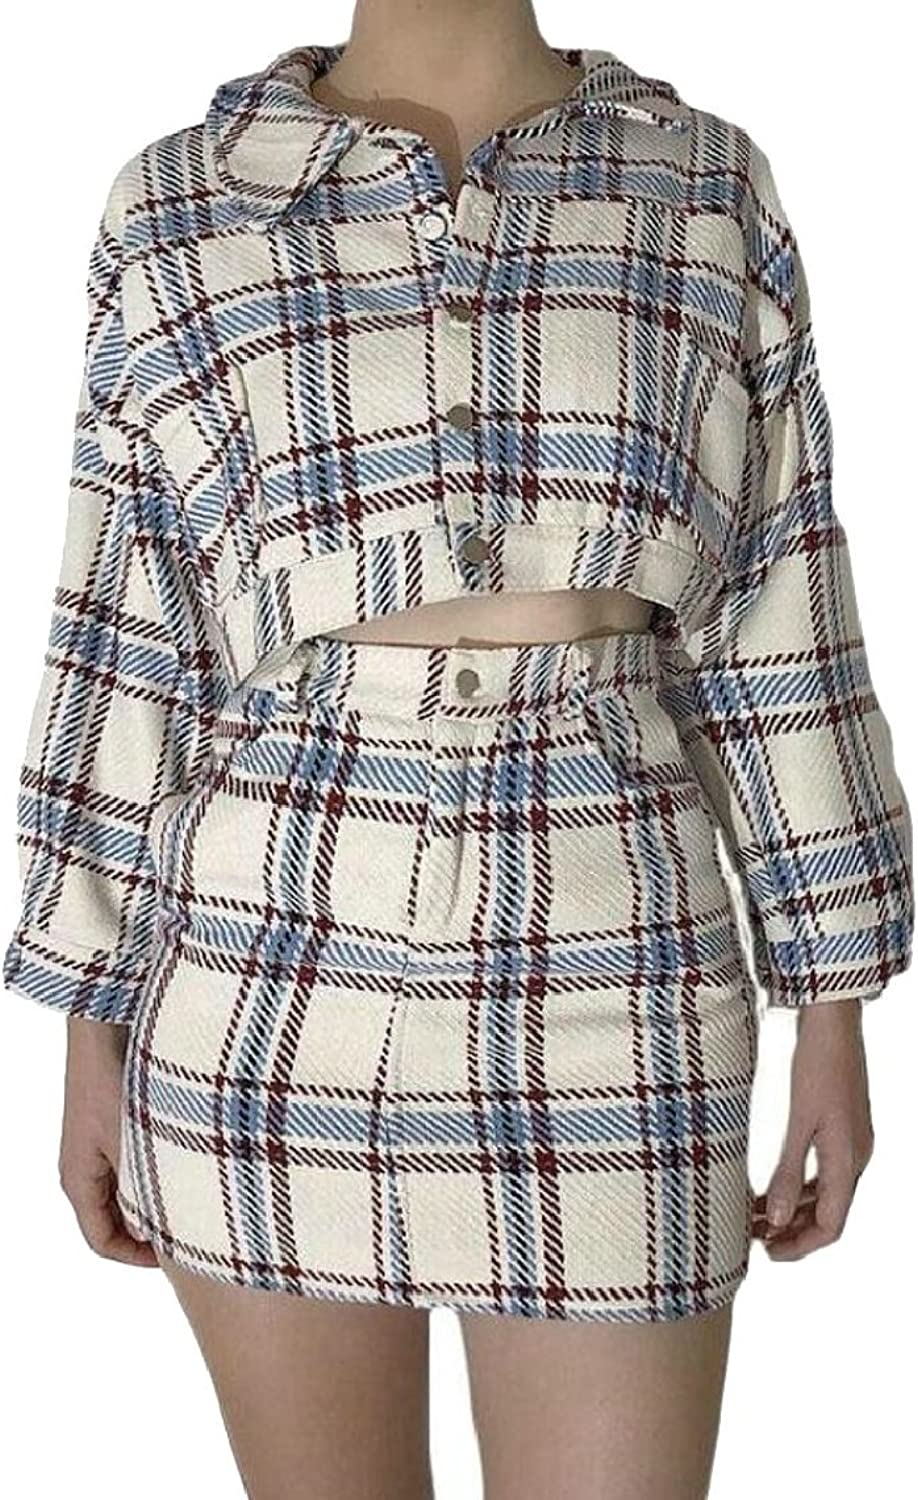 PujinggeCA Women 2 Pieces Crop Tops Jacket & High Waist Skirt Plaid Dresses